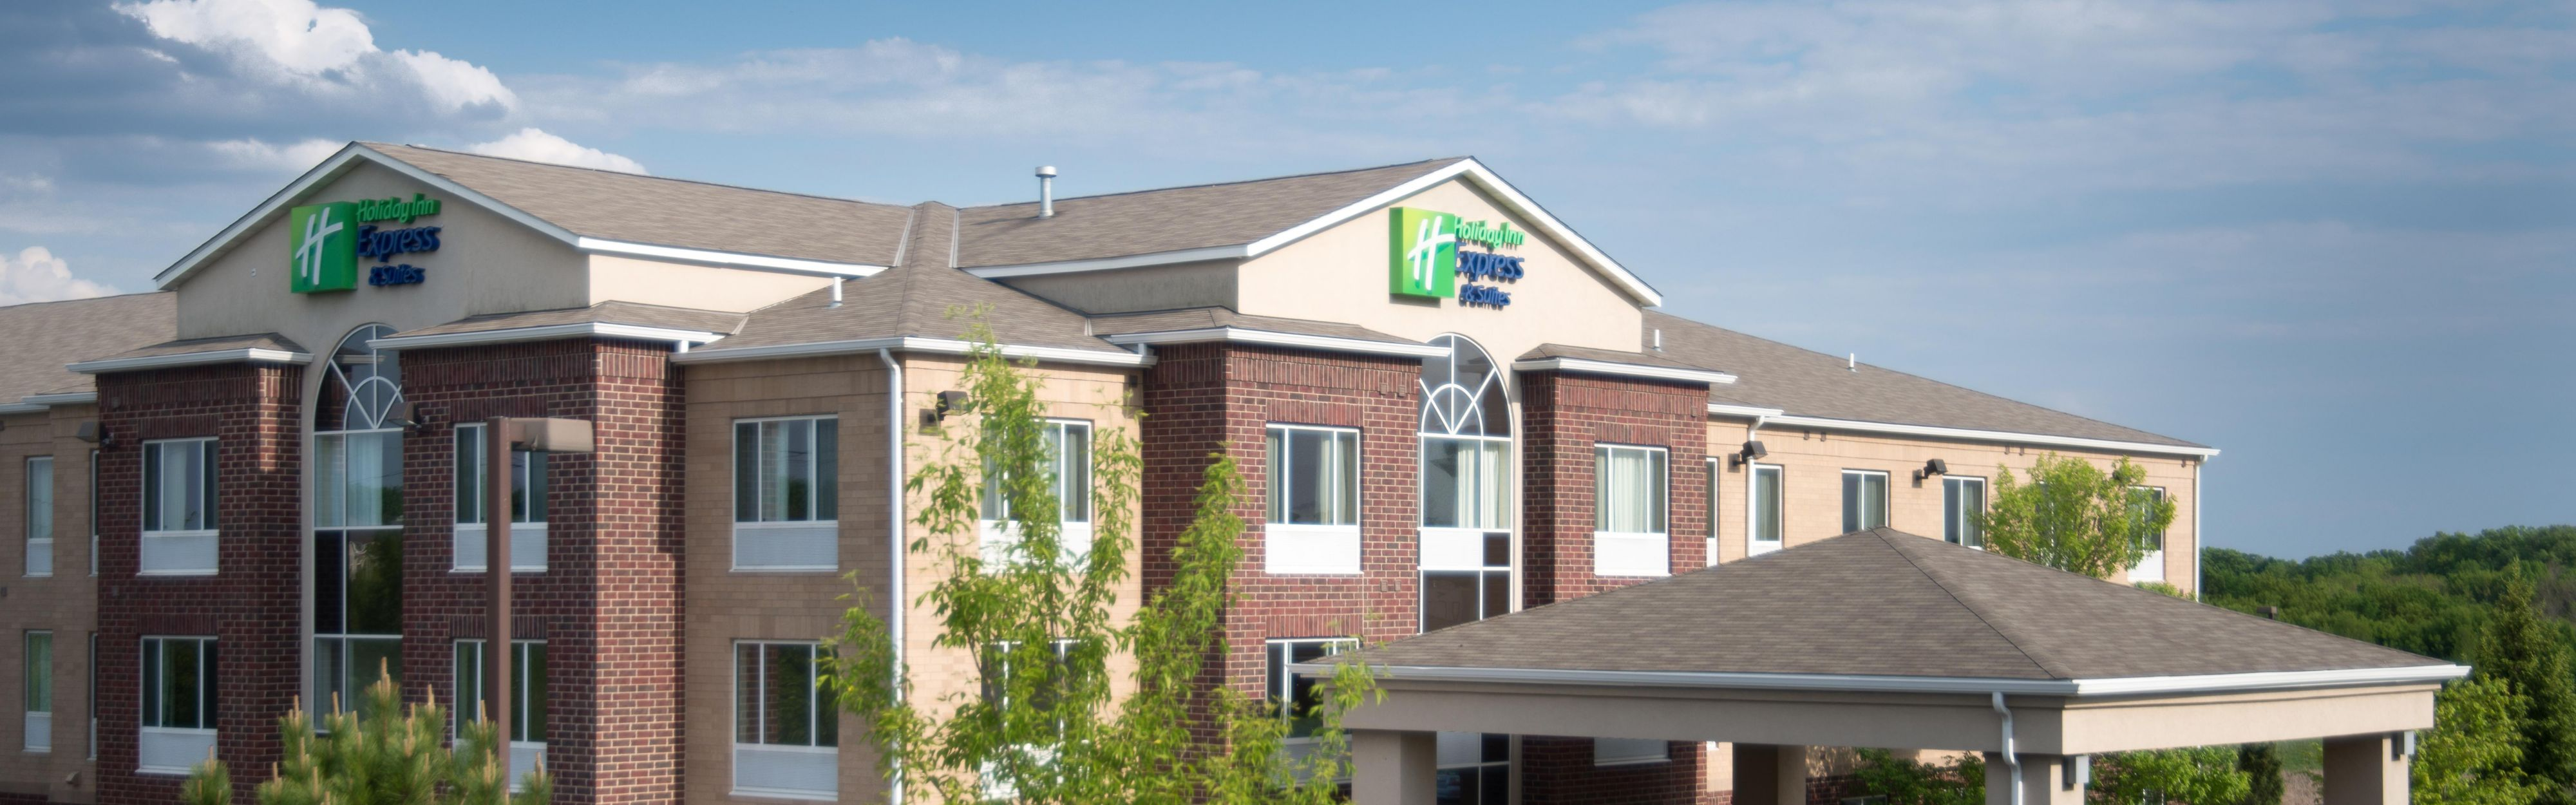 Holiday Inn Express & Suites Chanhassen image 0